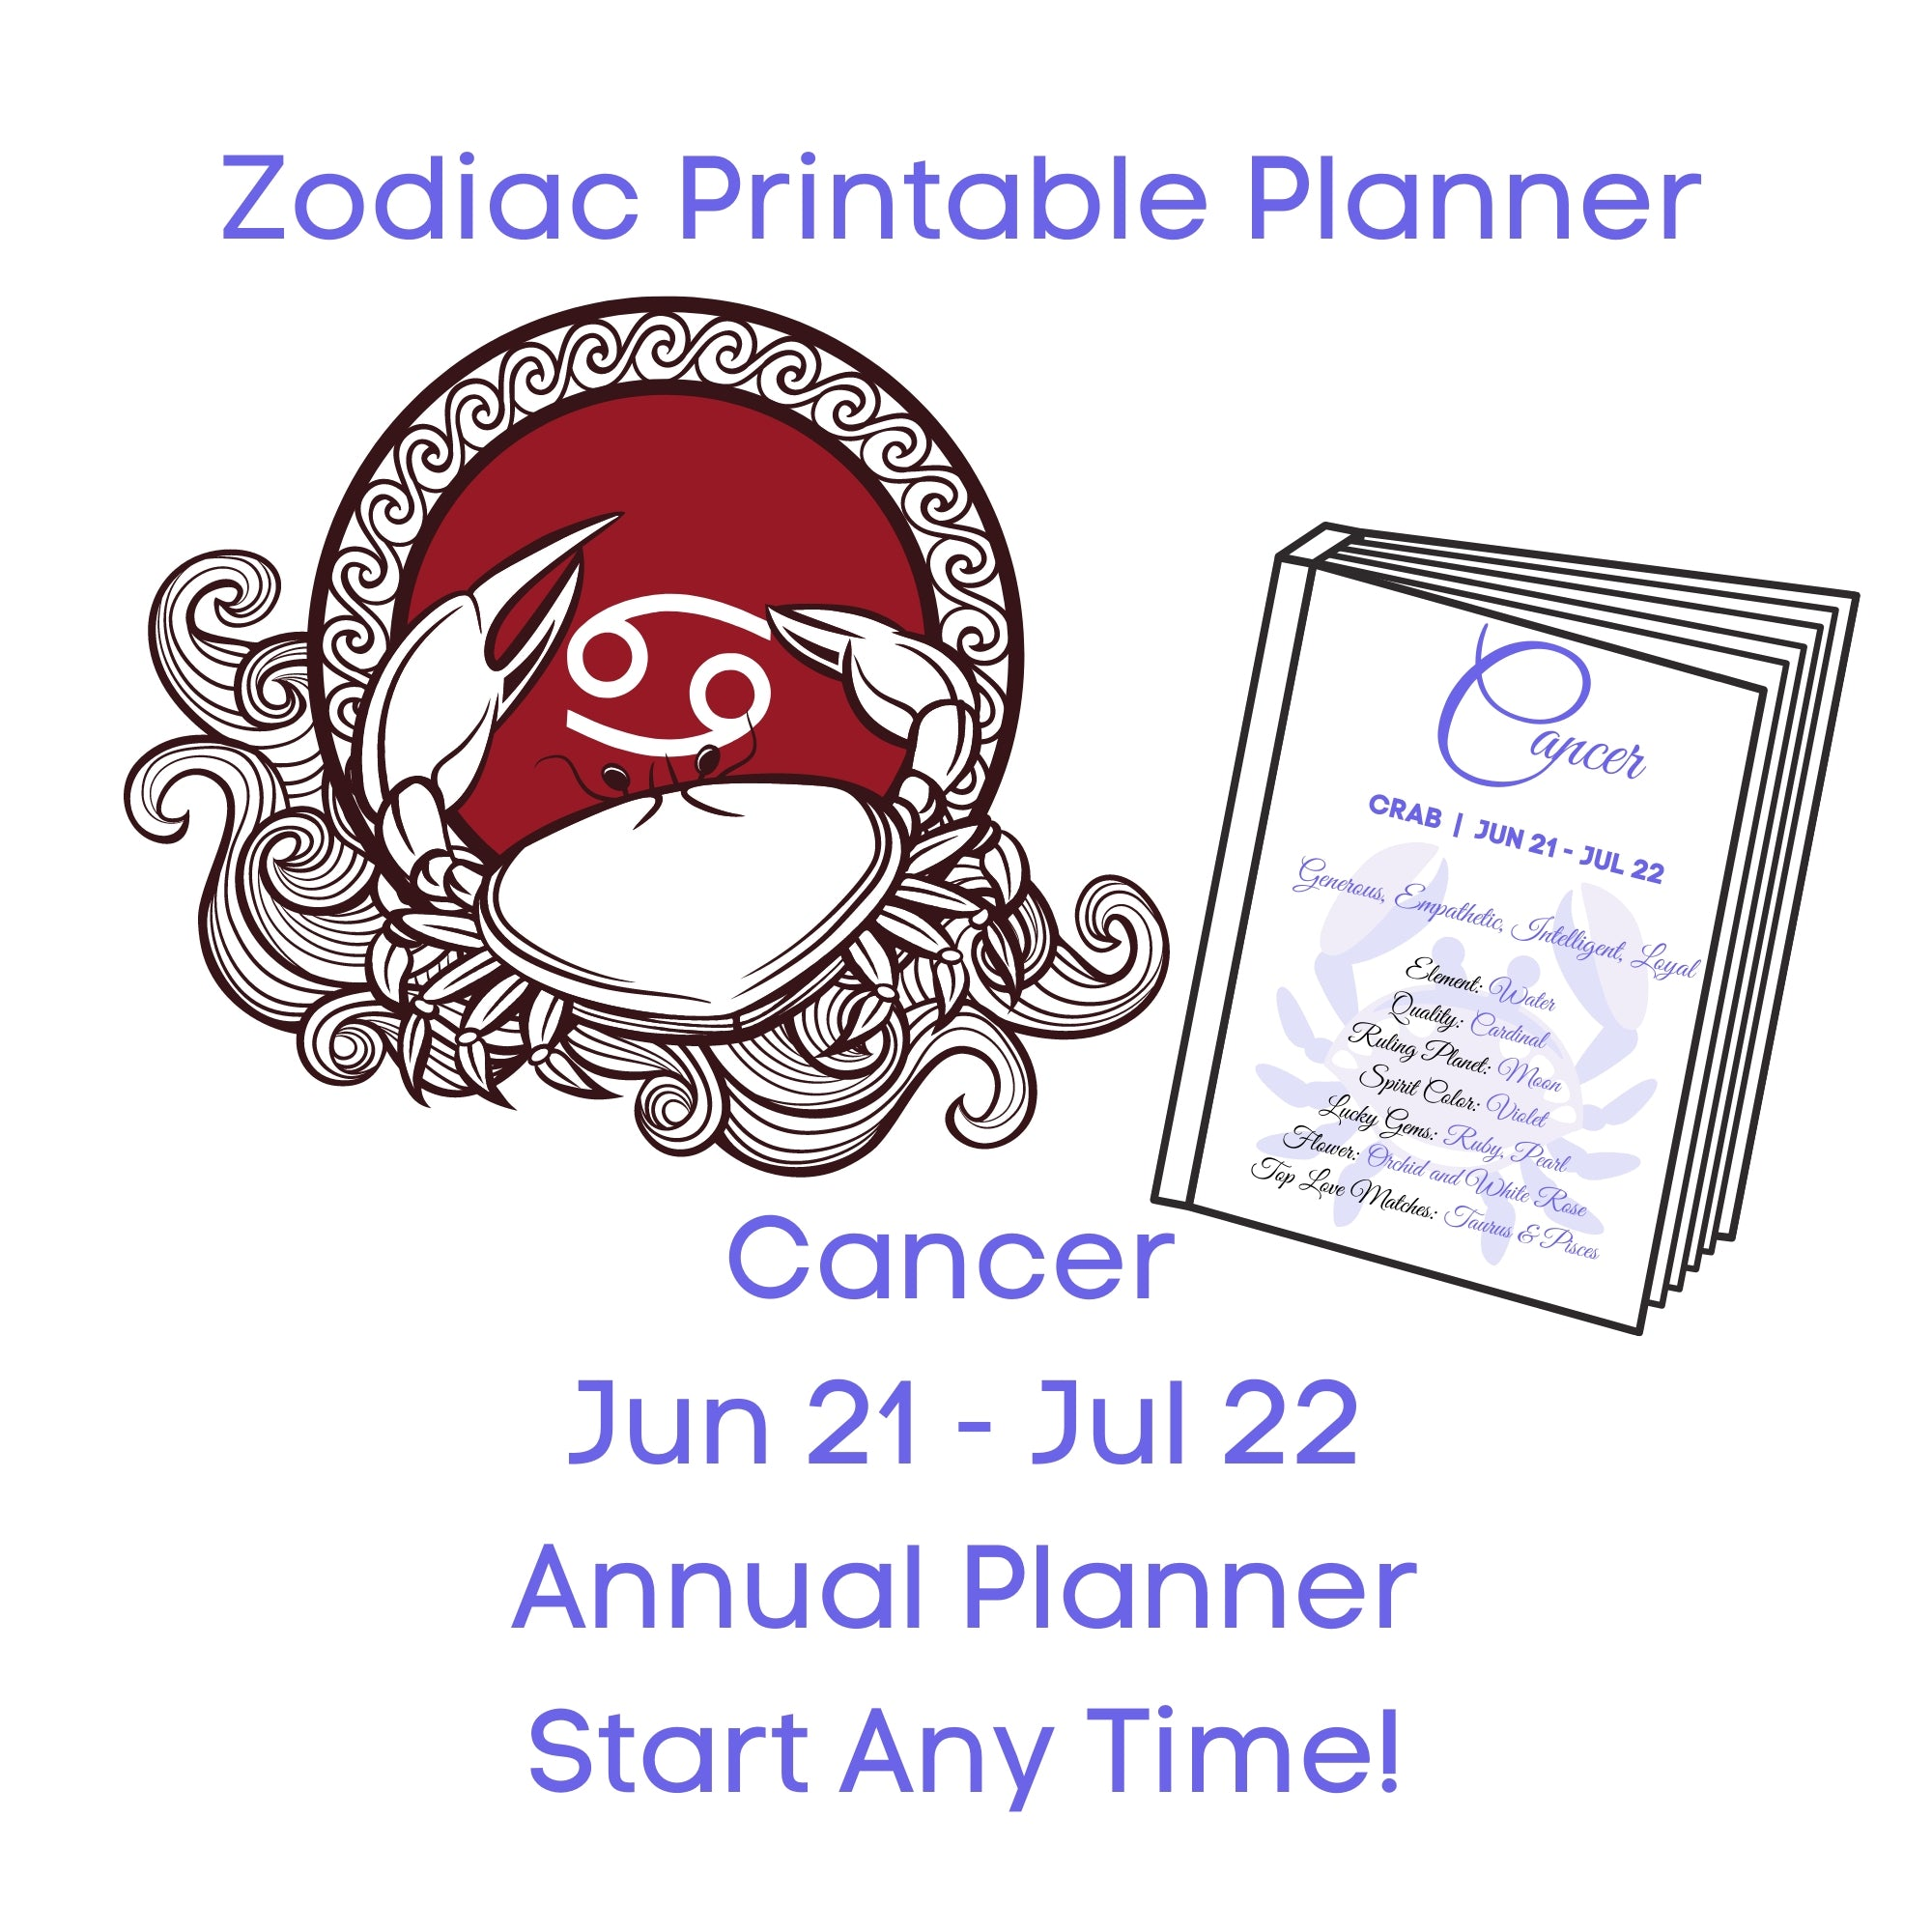 Cancer Zodiac Planner Annual Start Anytime!